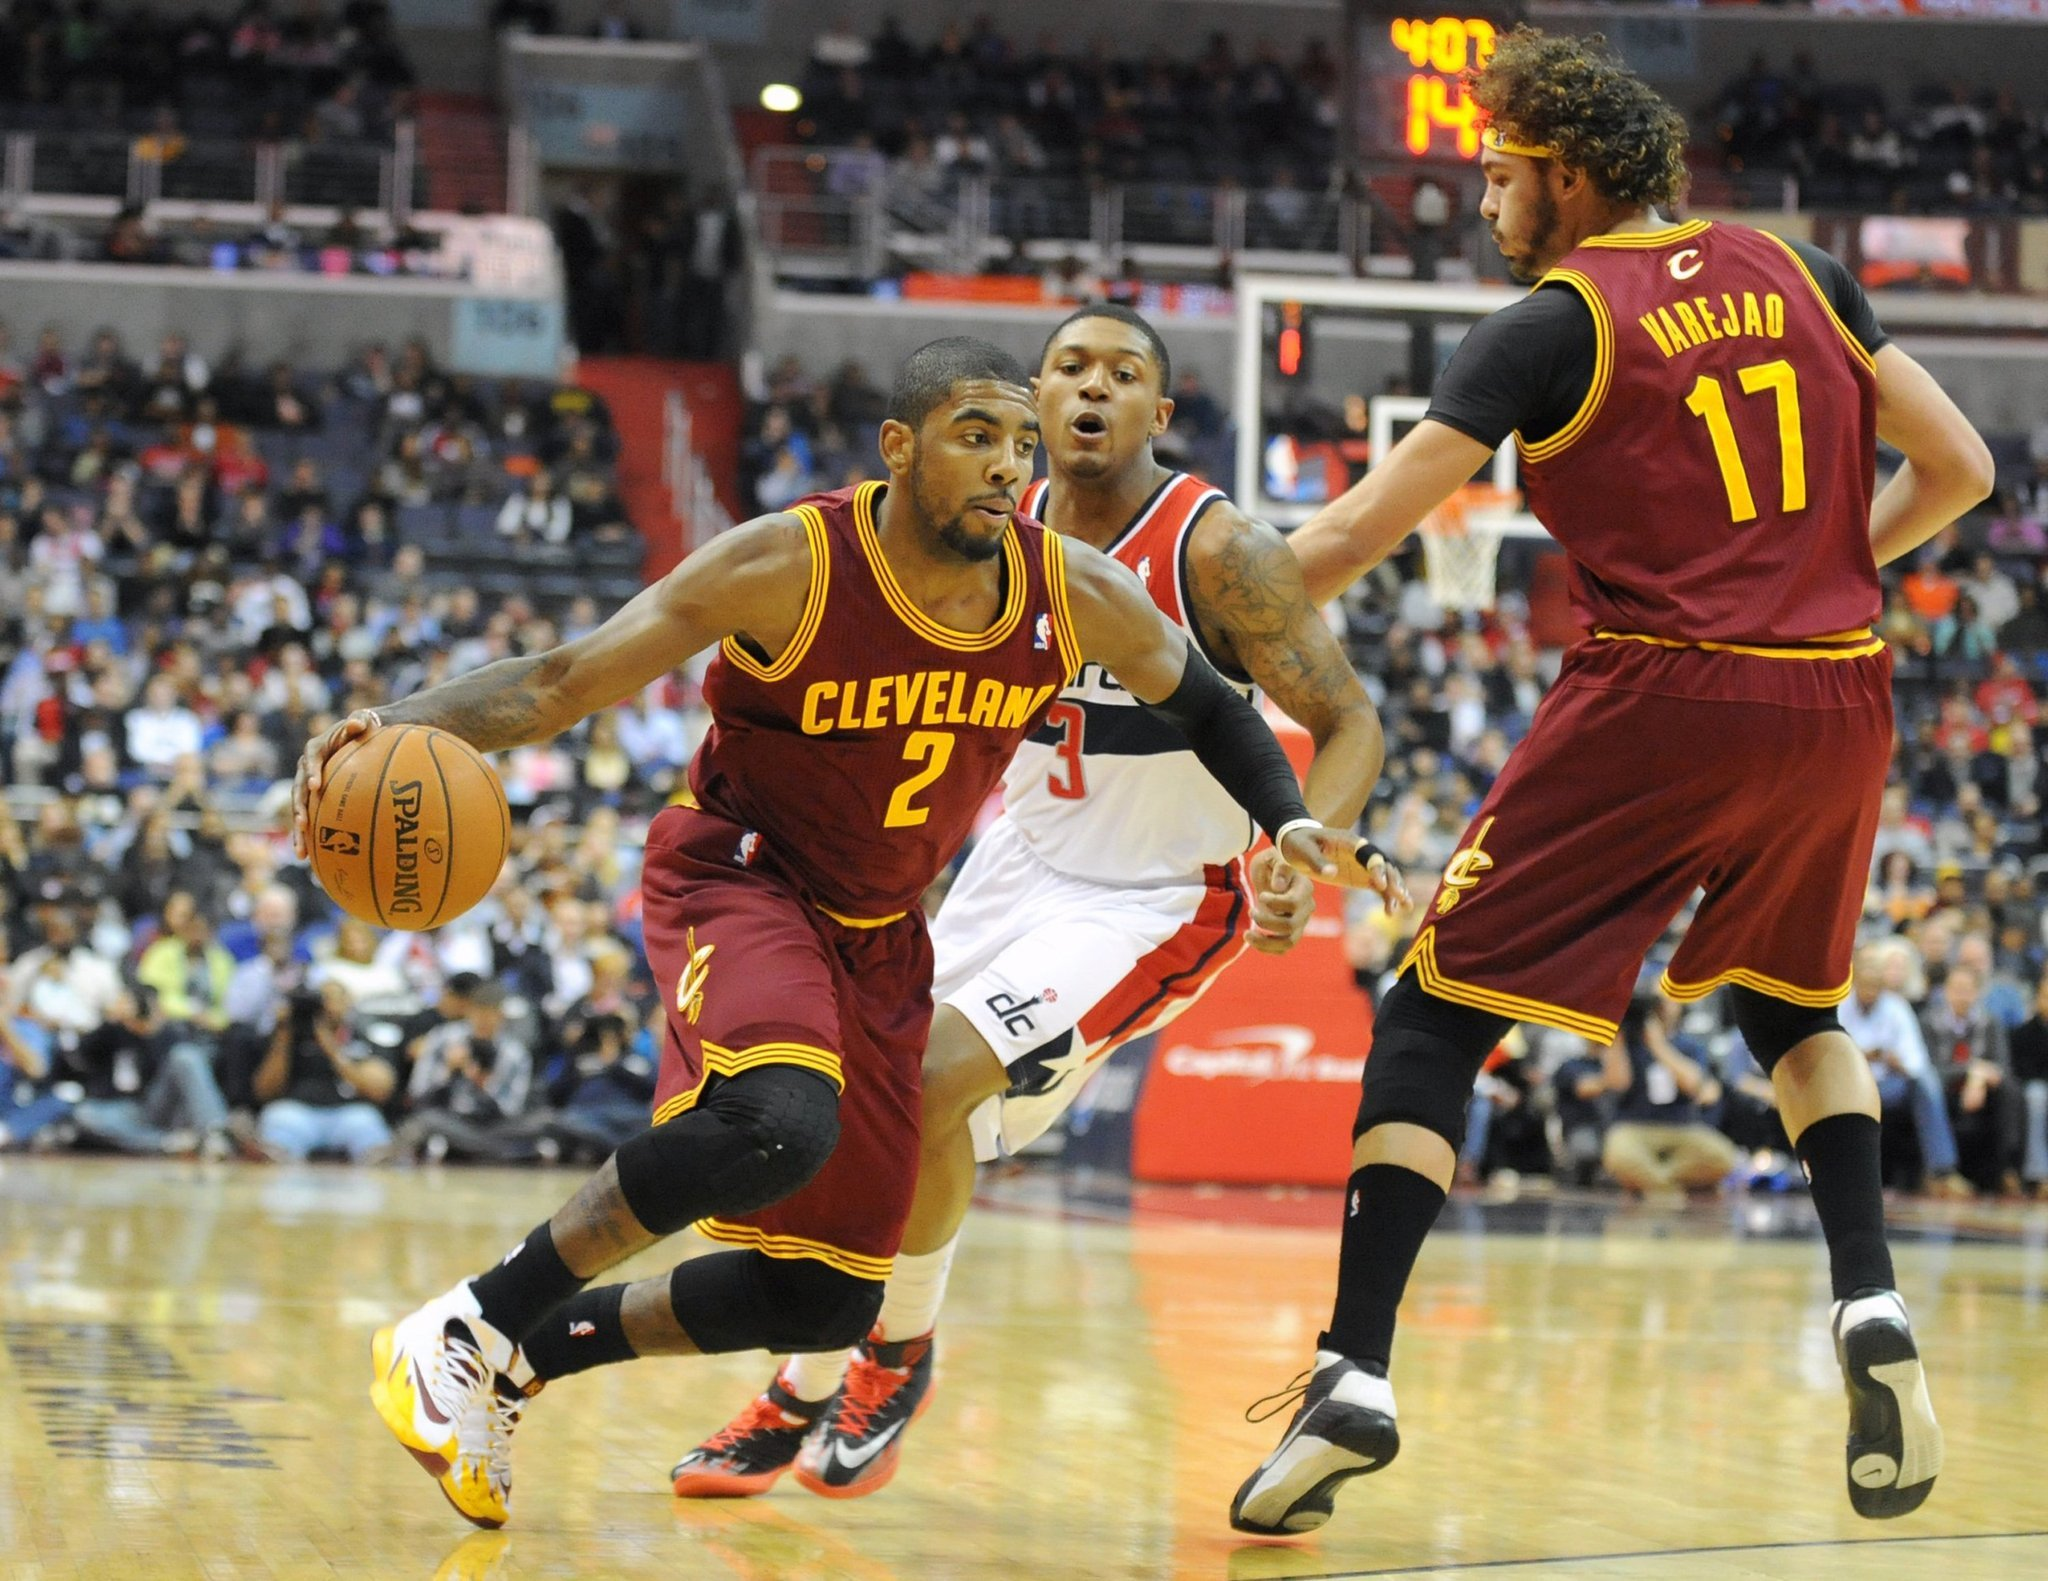 Cleveland Basketball Team >> Kyrie Irving, Cavaliers agree on extension - Chicago Tribune